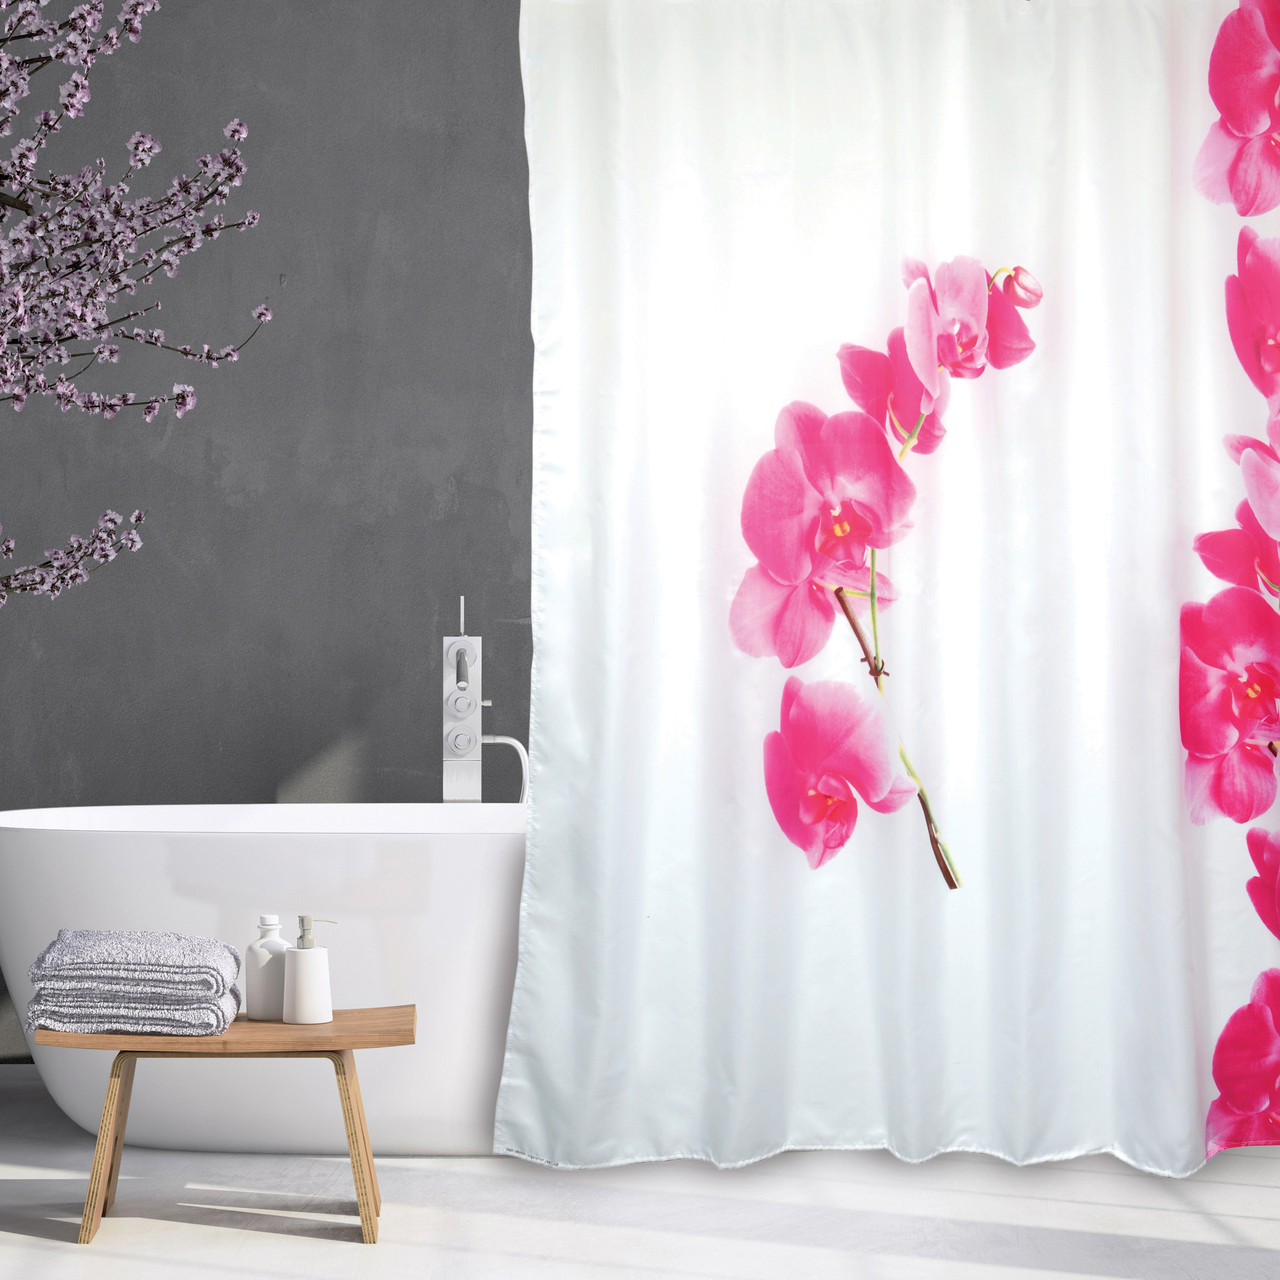 extra long shower curtain 72 x 78 inch msv france polyester fabric lanyu white